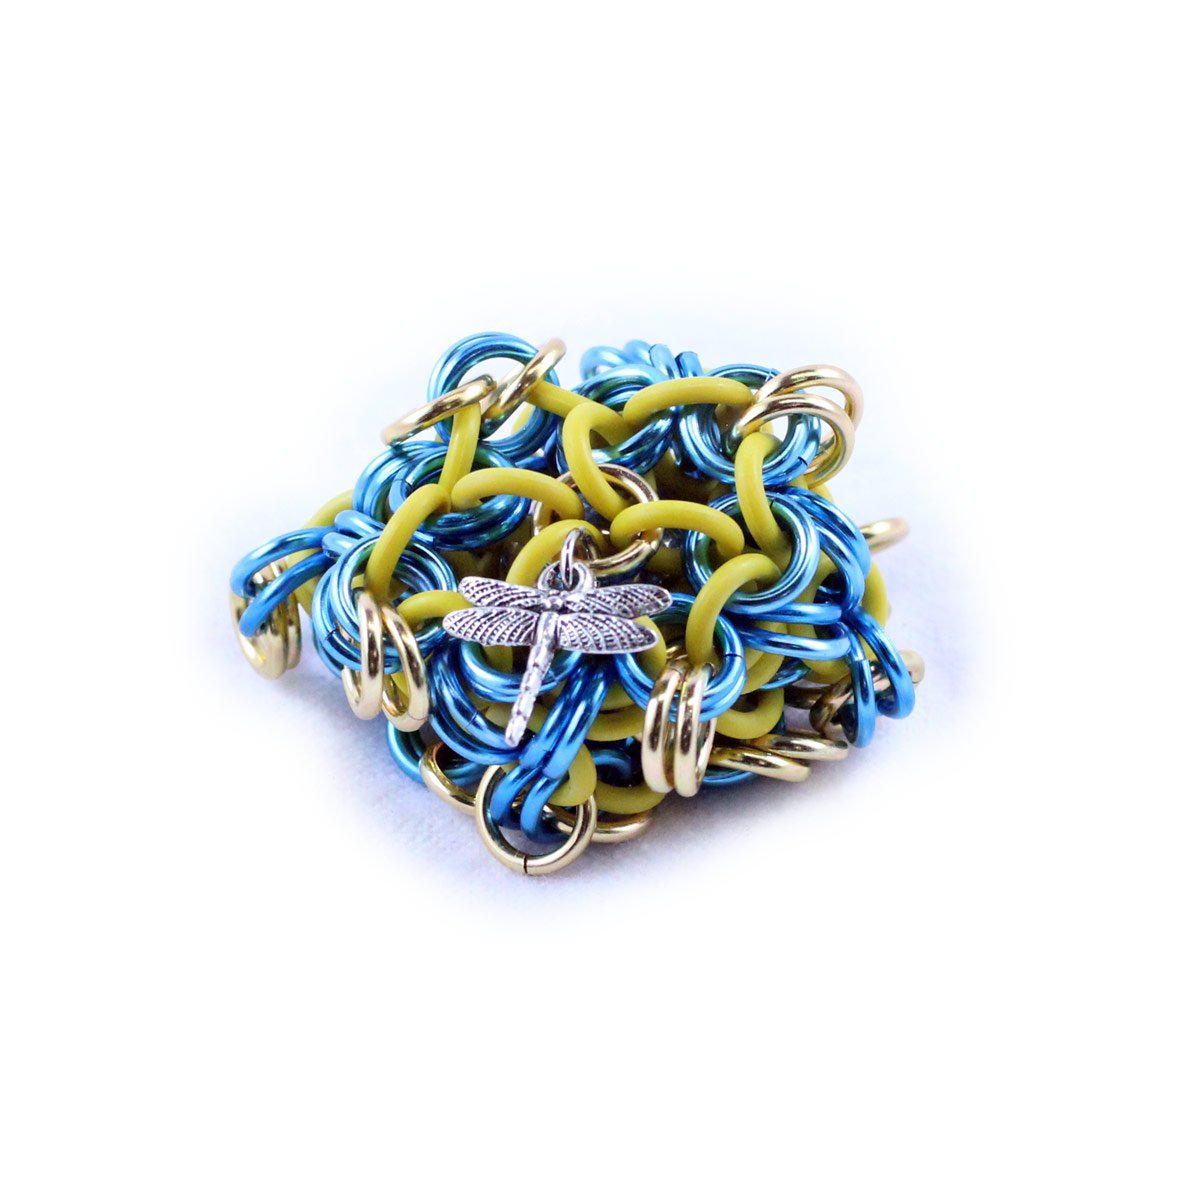 Dragonfly Footbags Blue, Gold and Yellow 22 Gram Chainmail Footbag (Hacky Sack)